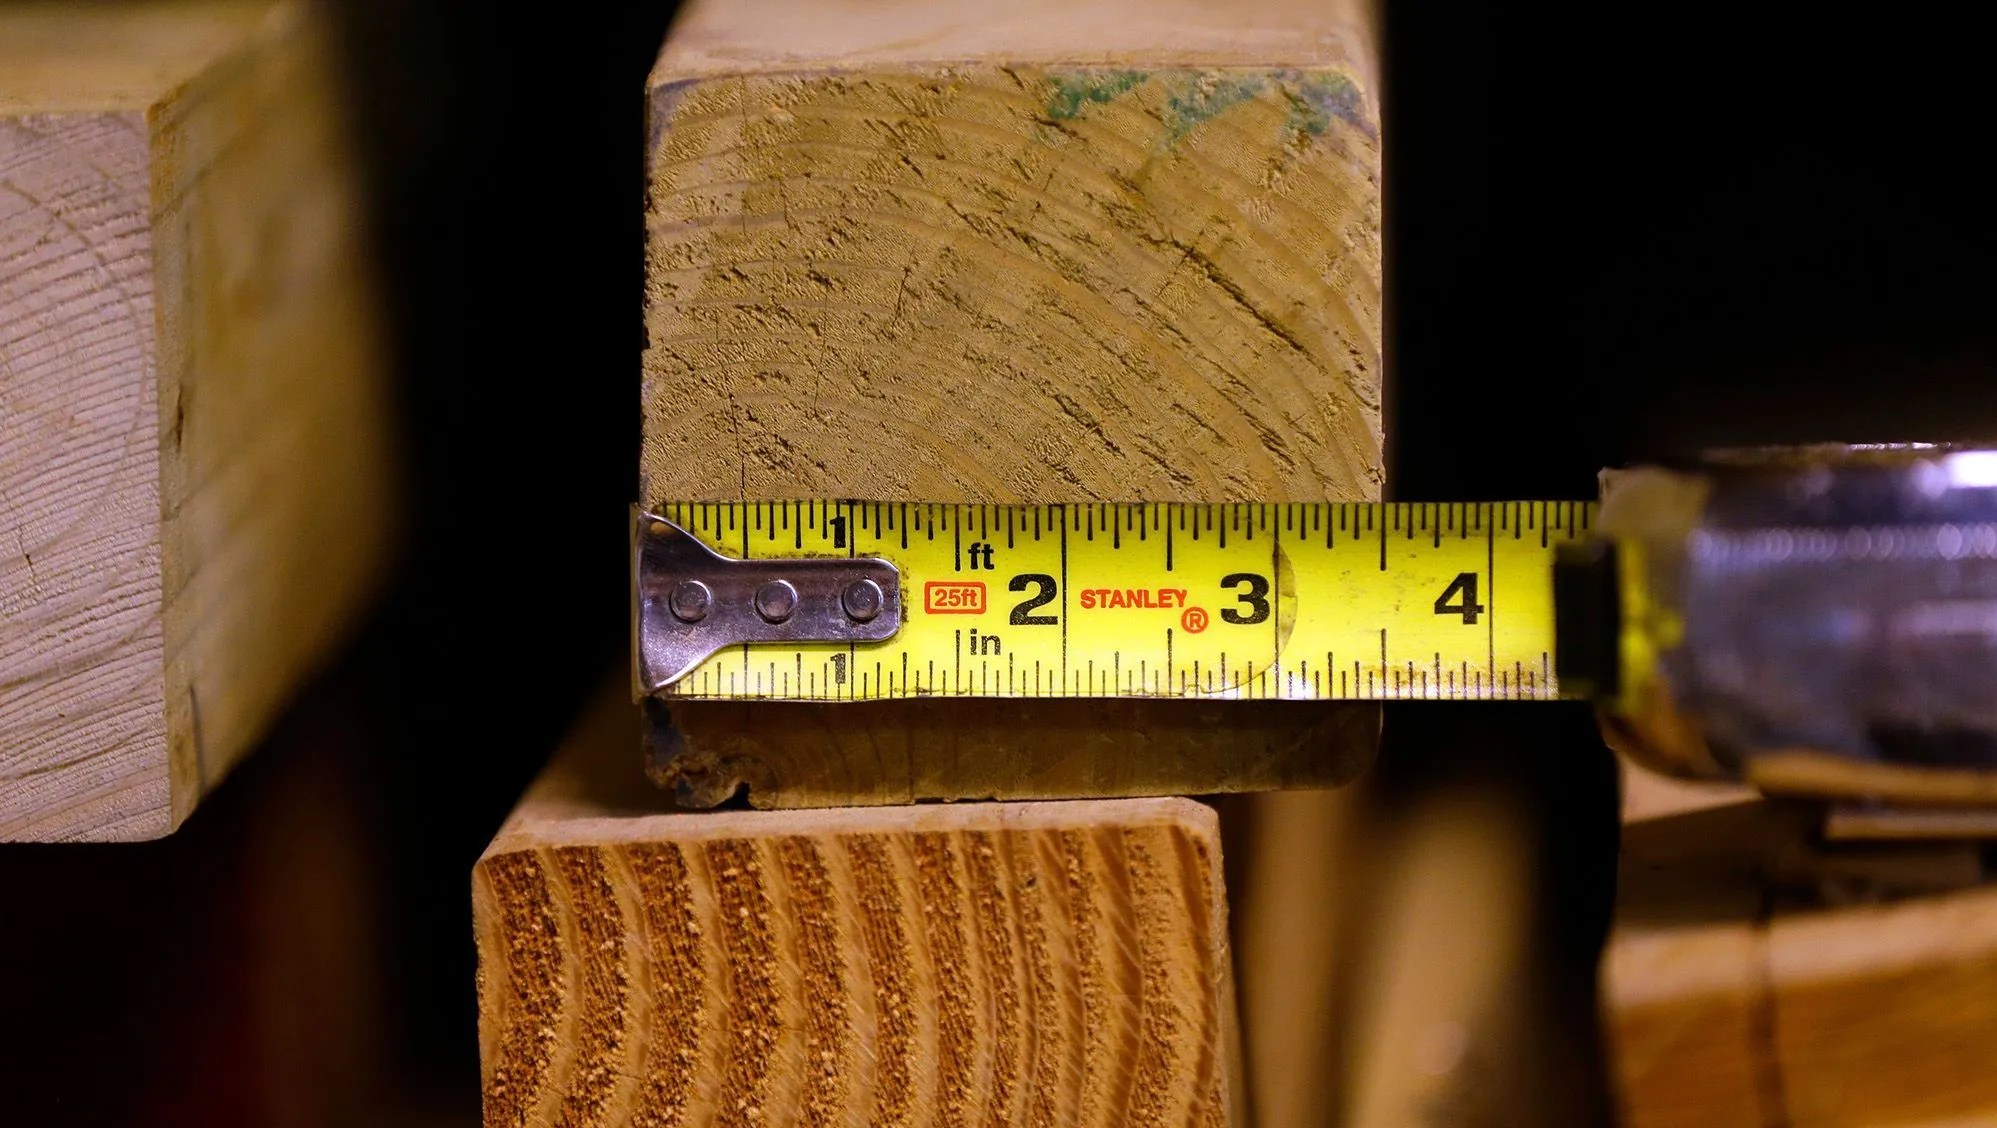 Dimension Of 2×4 Lumber